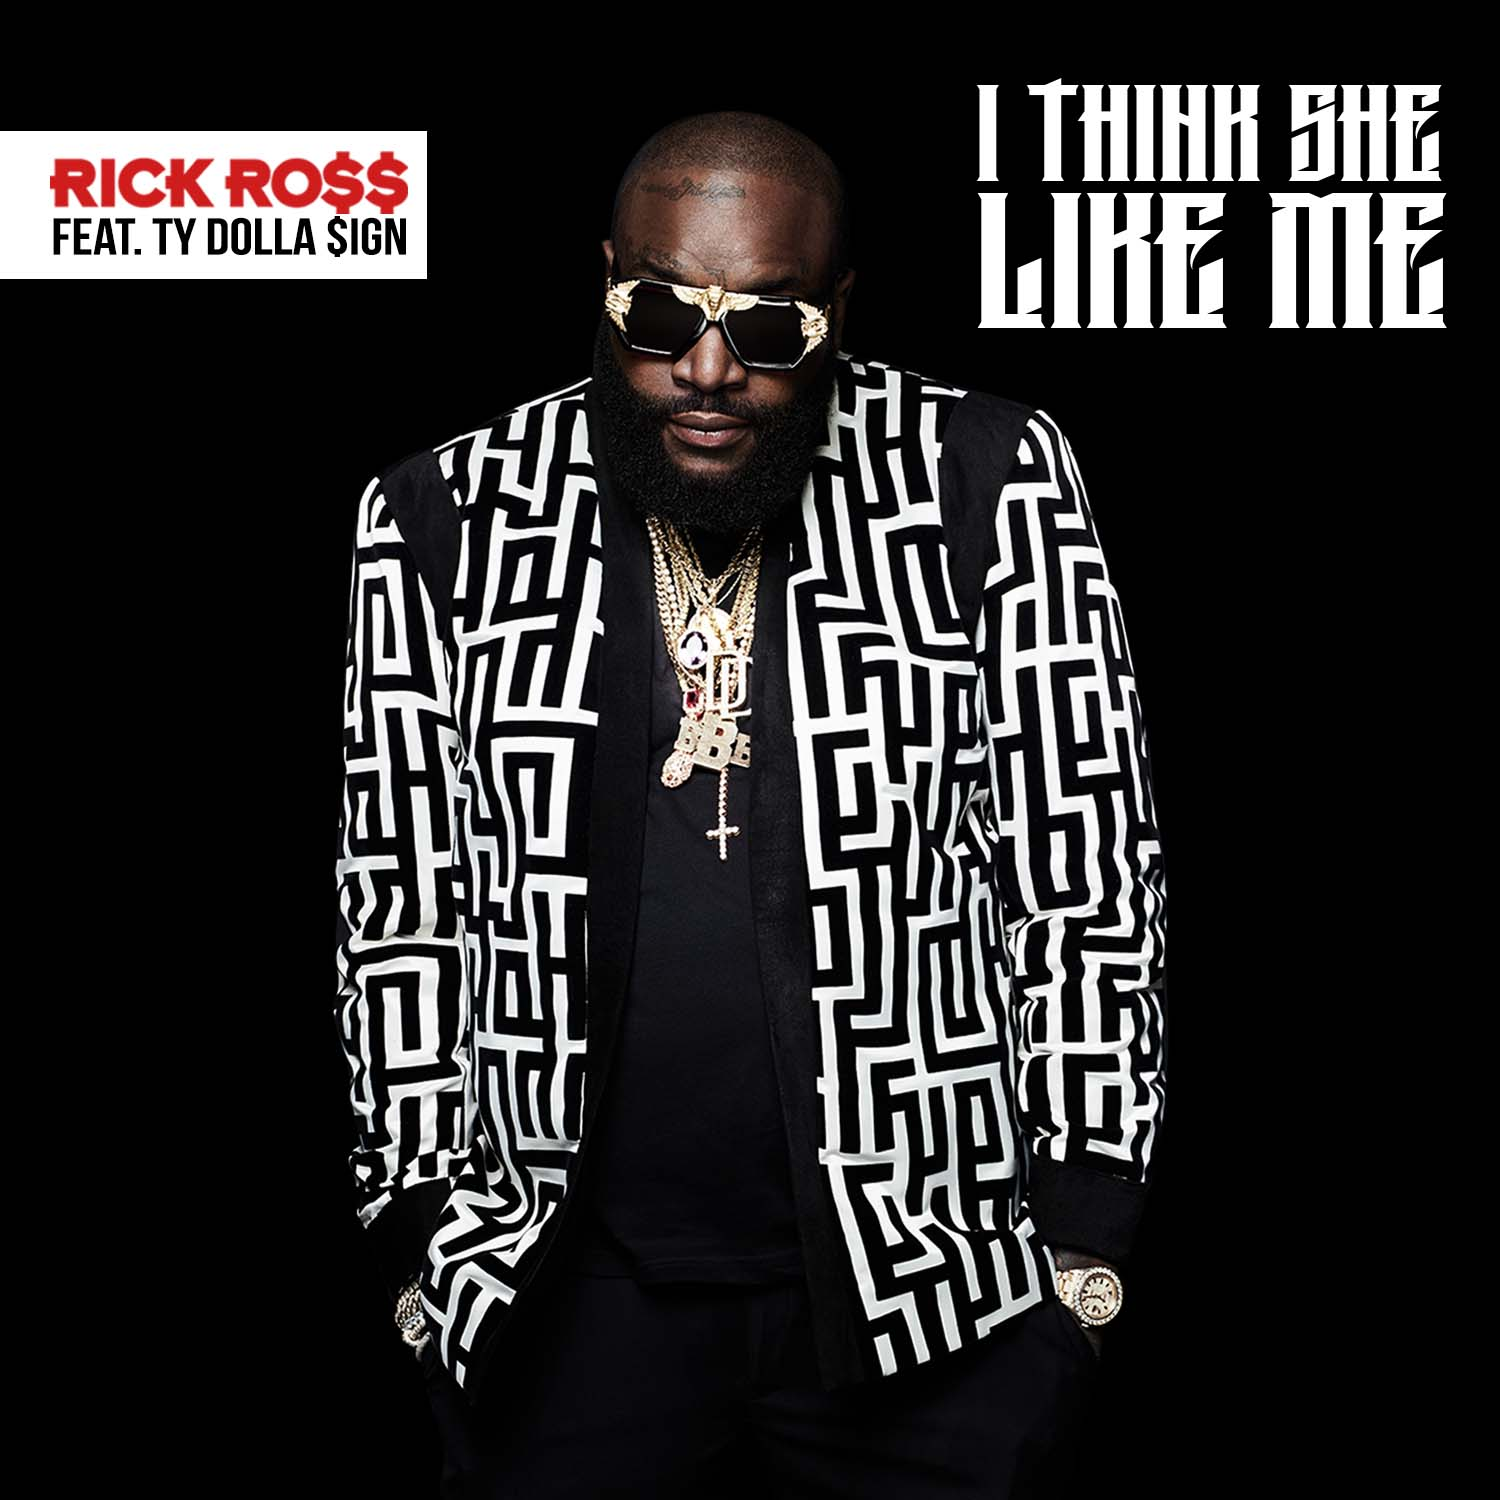 """eaa4f637f41 RICK ROSS RELEASES NEW SINGLE """"I THINK SHE LIKE ME"""" FEATURING TY ..."""